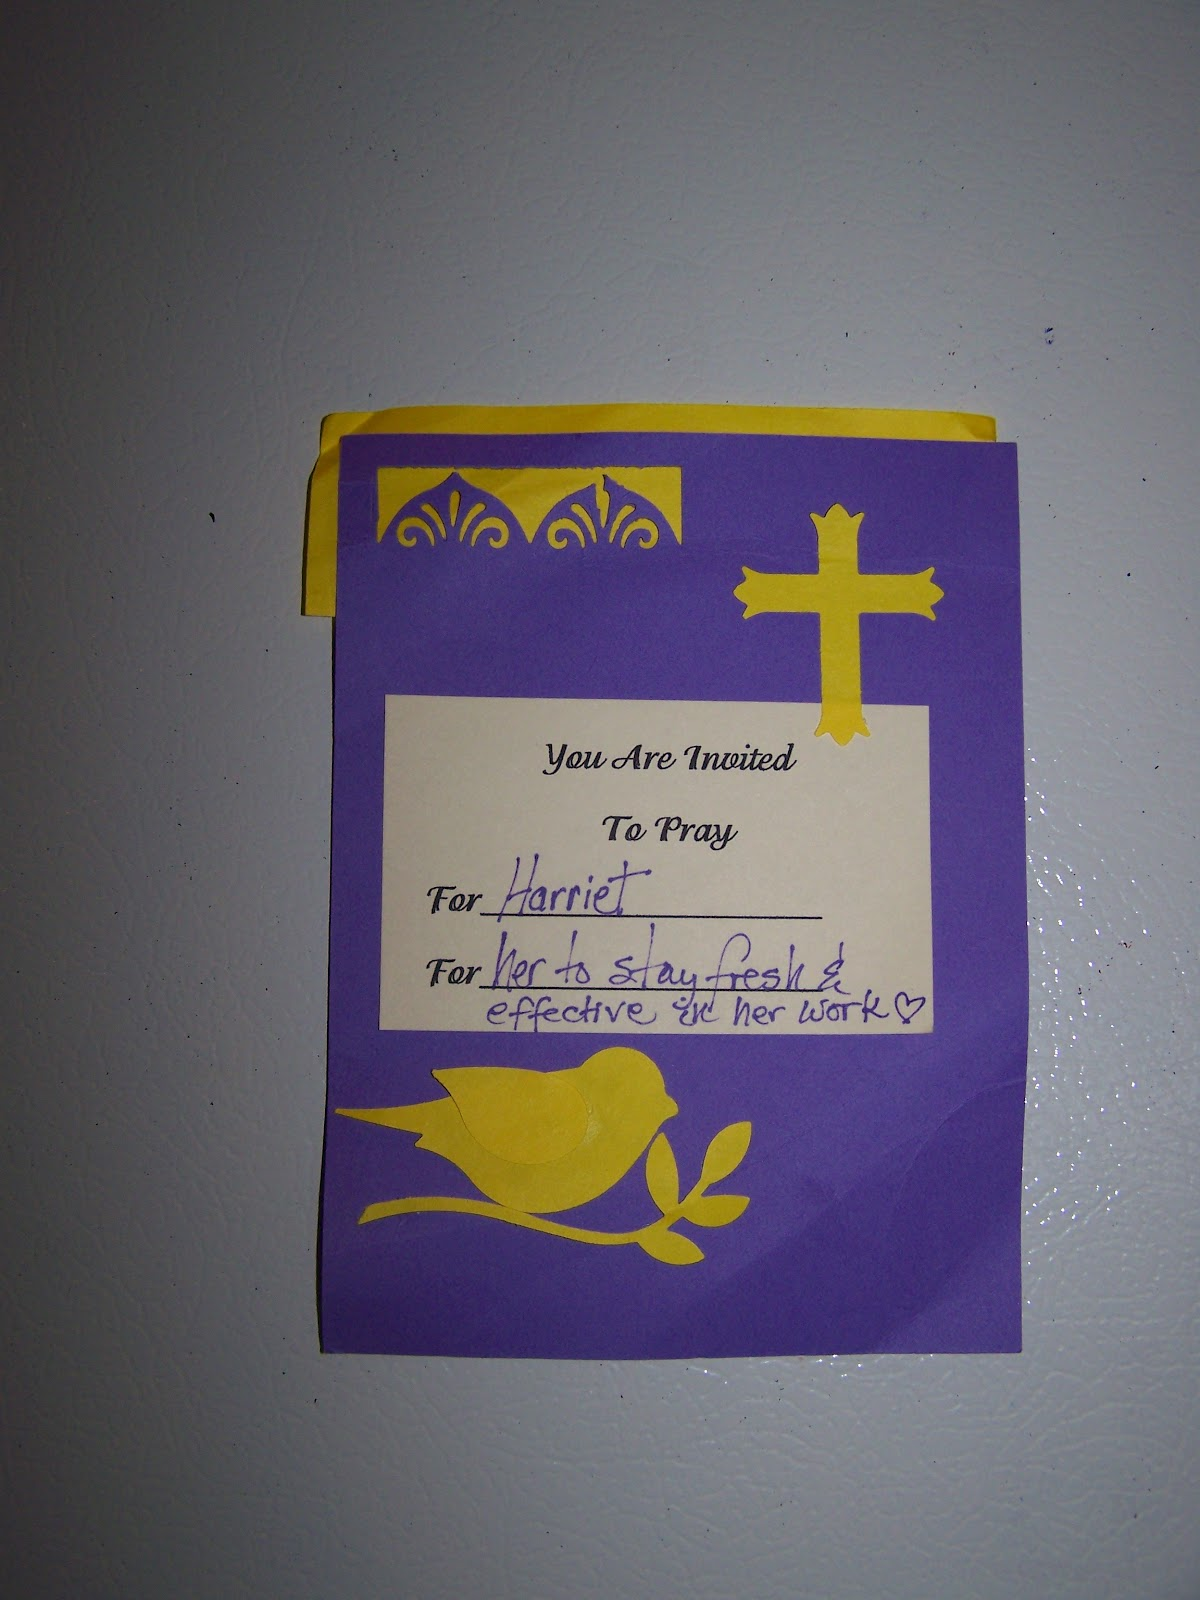 Liberation theology lutheran prayer invitation as refrigerator magnet i have a vision of baskets or bags of art materials that we give out as people enter church they could create the magnets as the service progresses or thecheapjerseys Choice Image